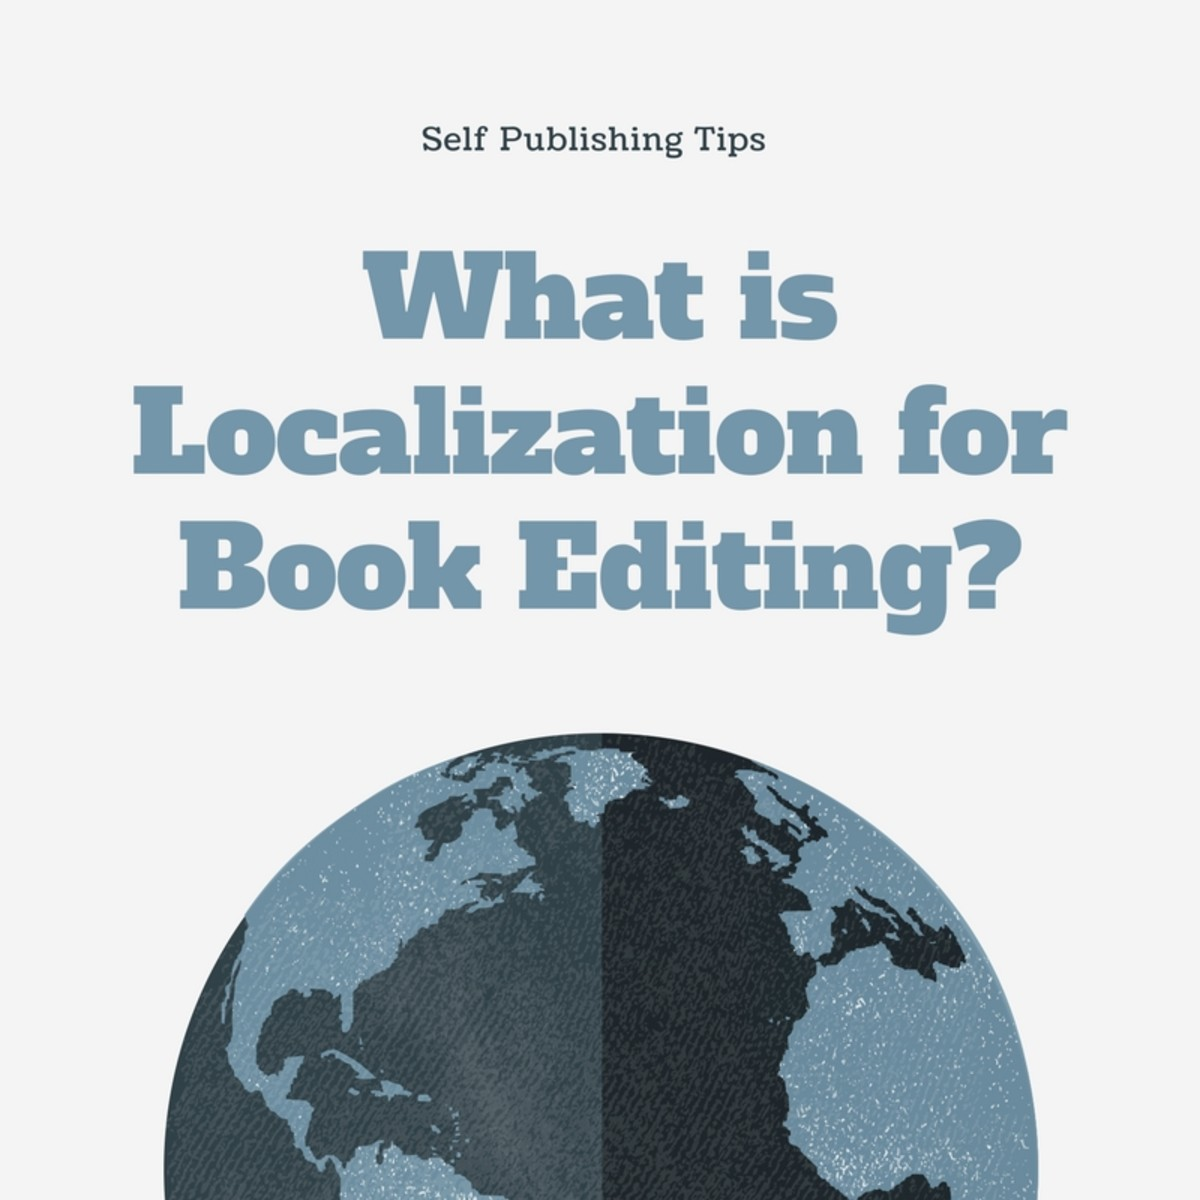 What Is Localization for Book Editing?